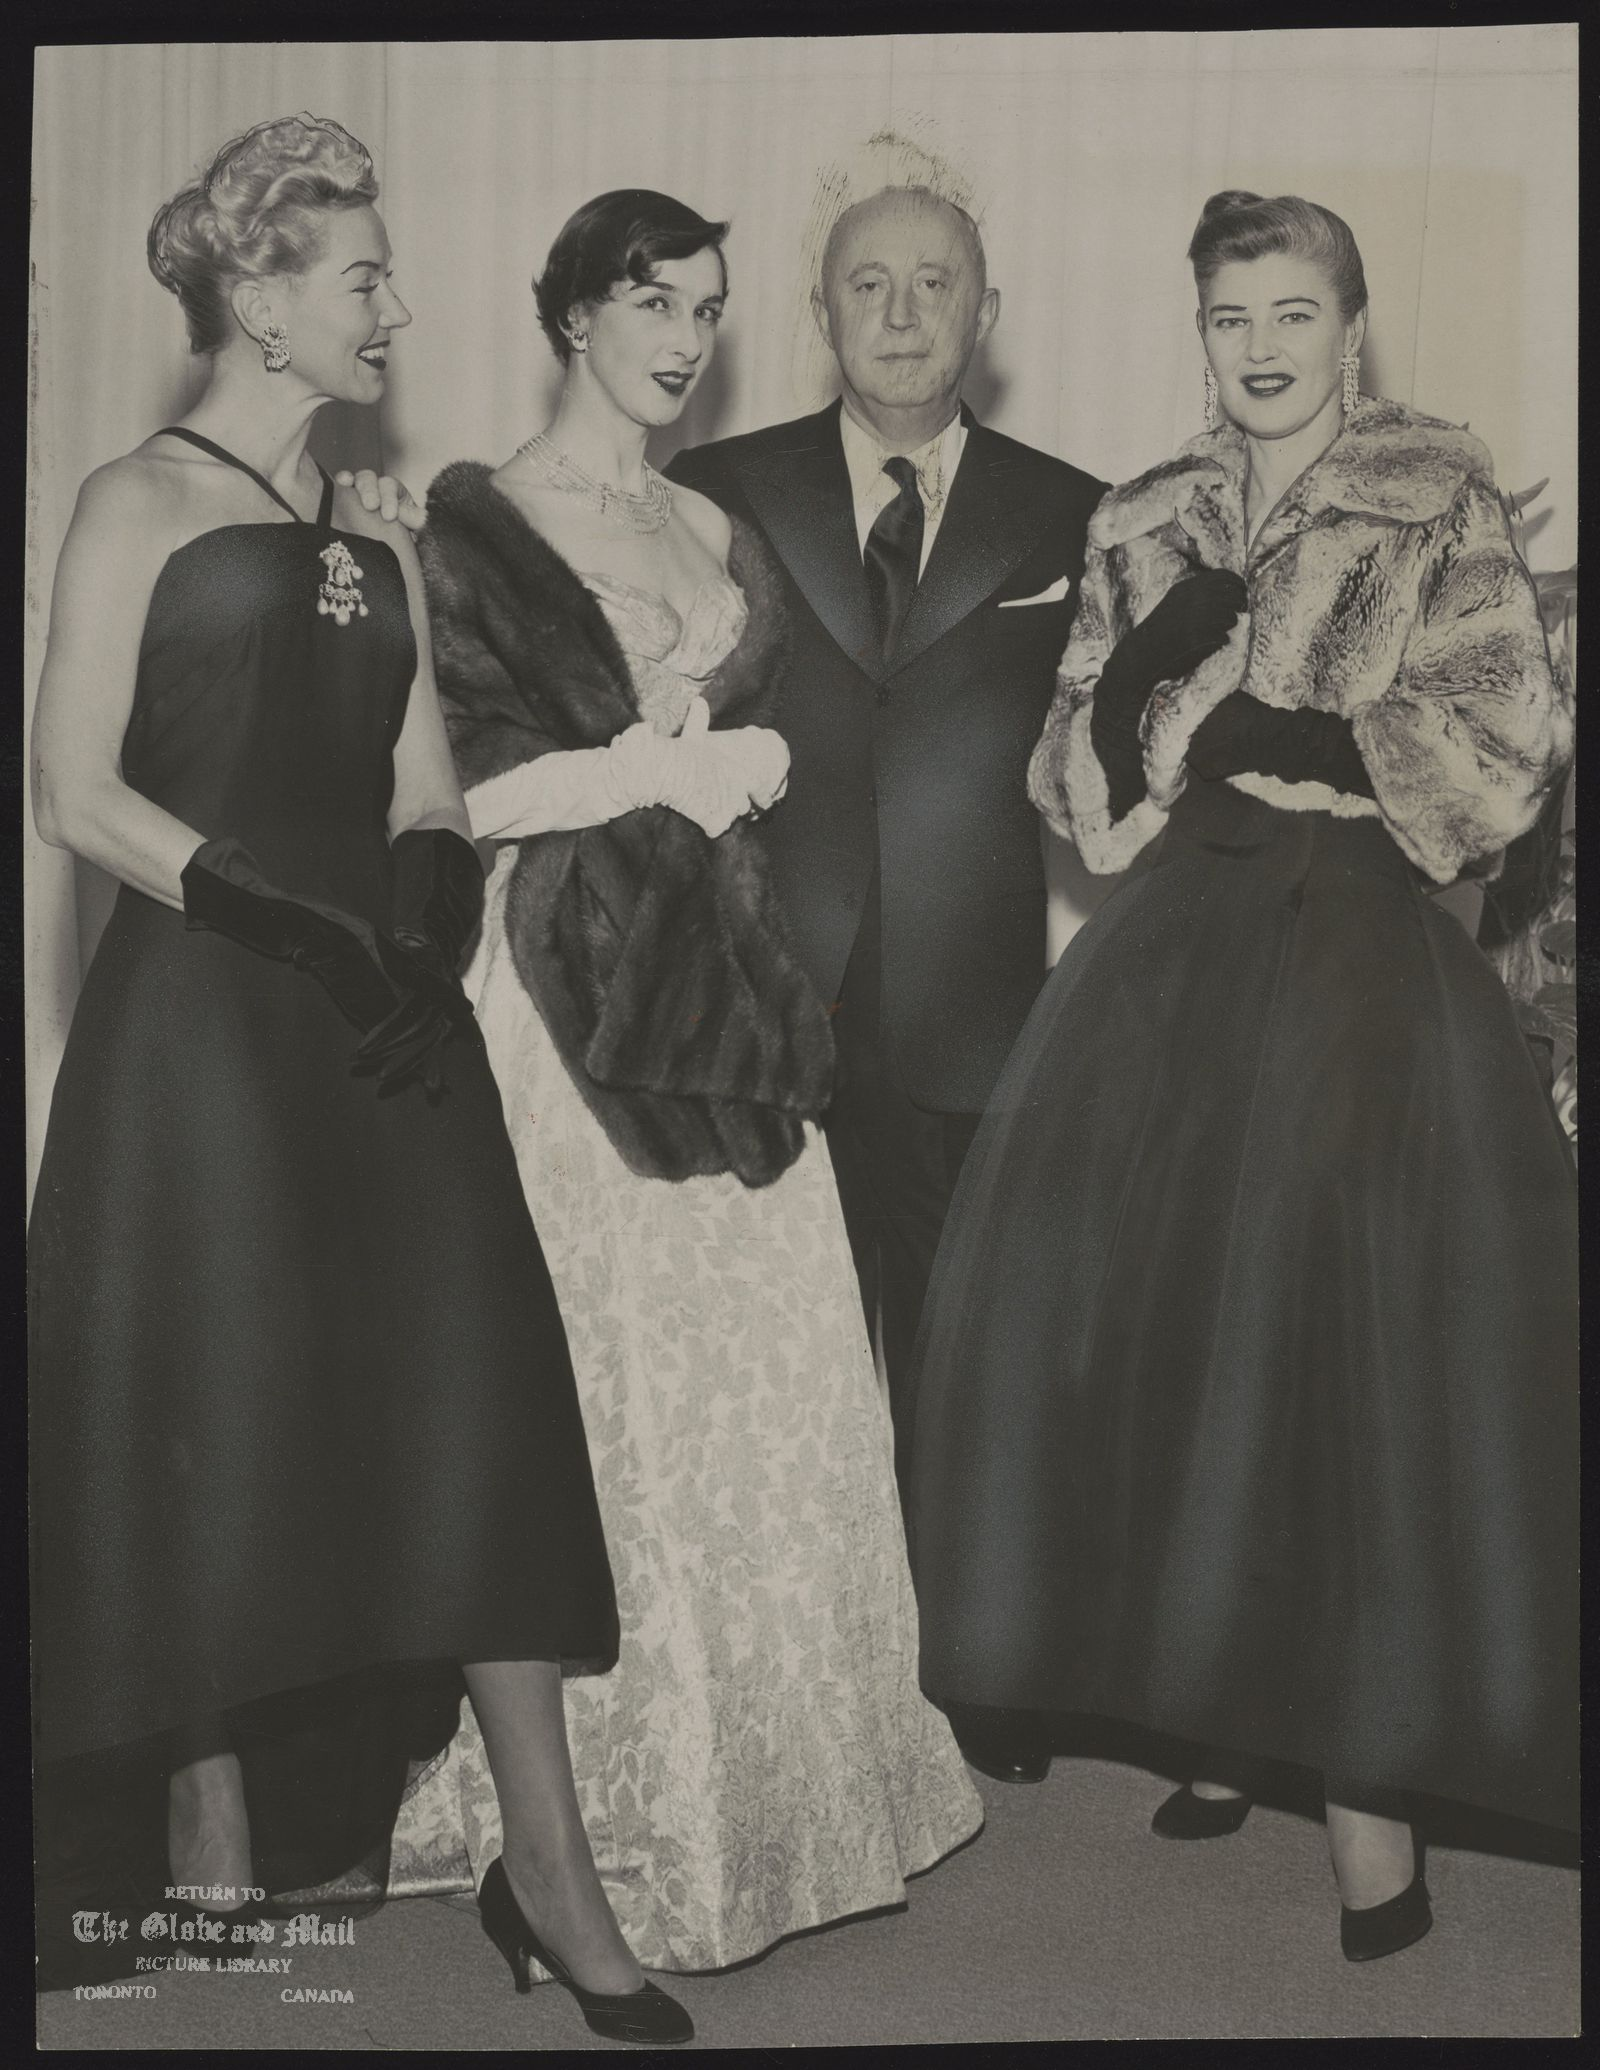 The notes transcribed from the back of this photograph are as follows: Christian Dior poses with three of his models at Holt Renfrew's on Bloor St. Left to right, Mabel Glenby, New York; Jeanne Gora, Paris; and, on the other side of Mr. Dior, Mary Ryan, New York. They flew here especially to model in yesterday's showings.